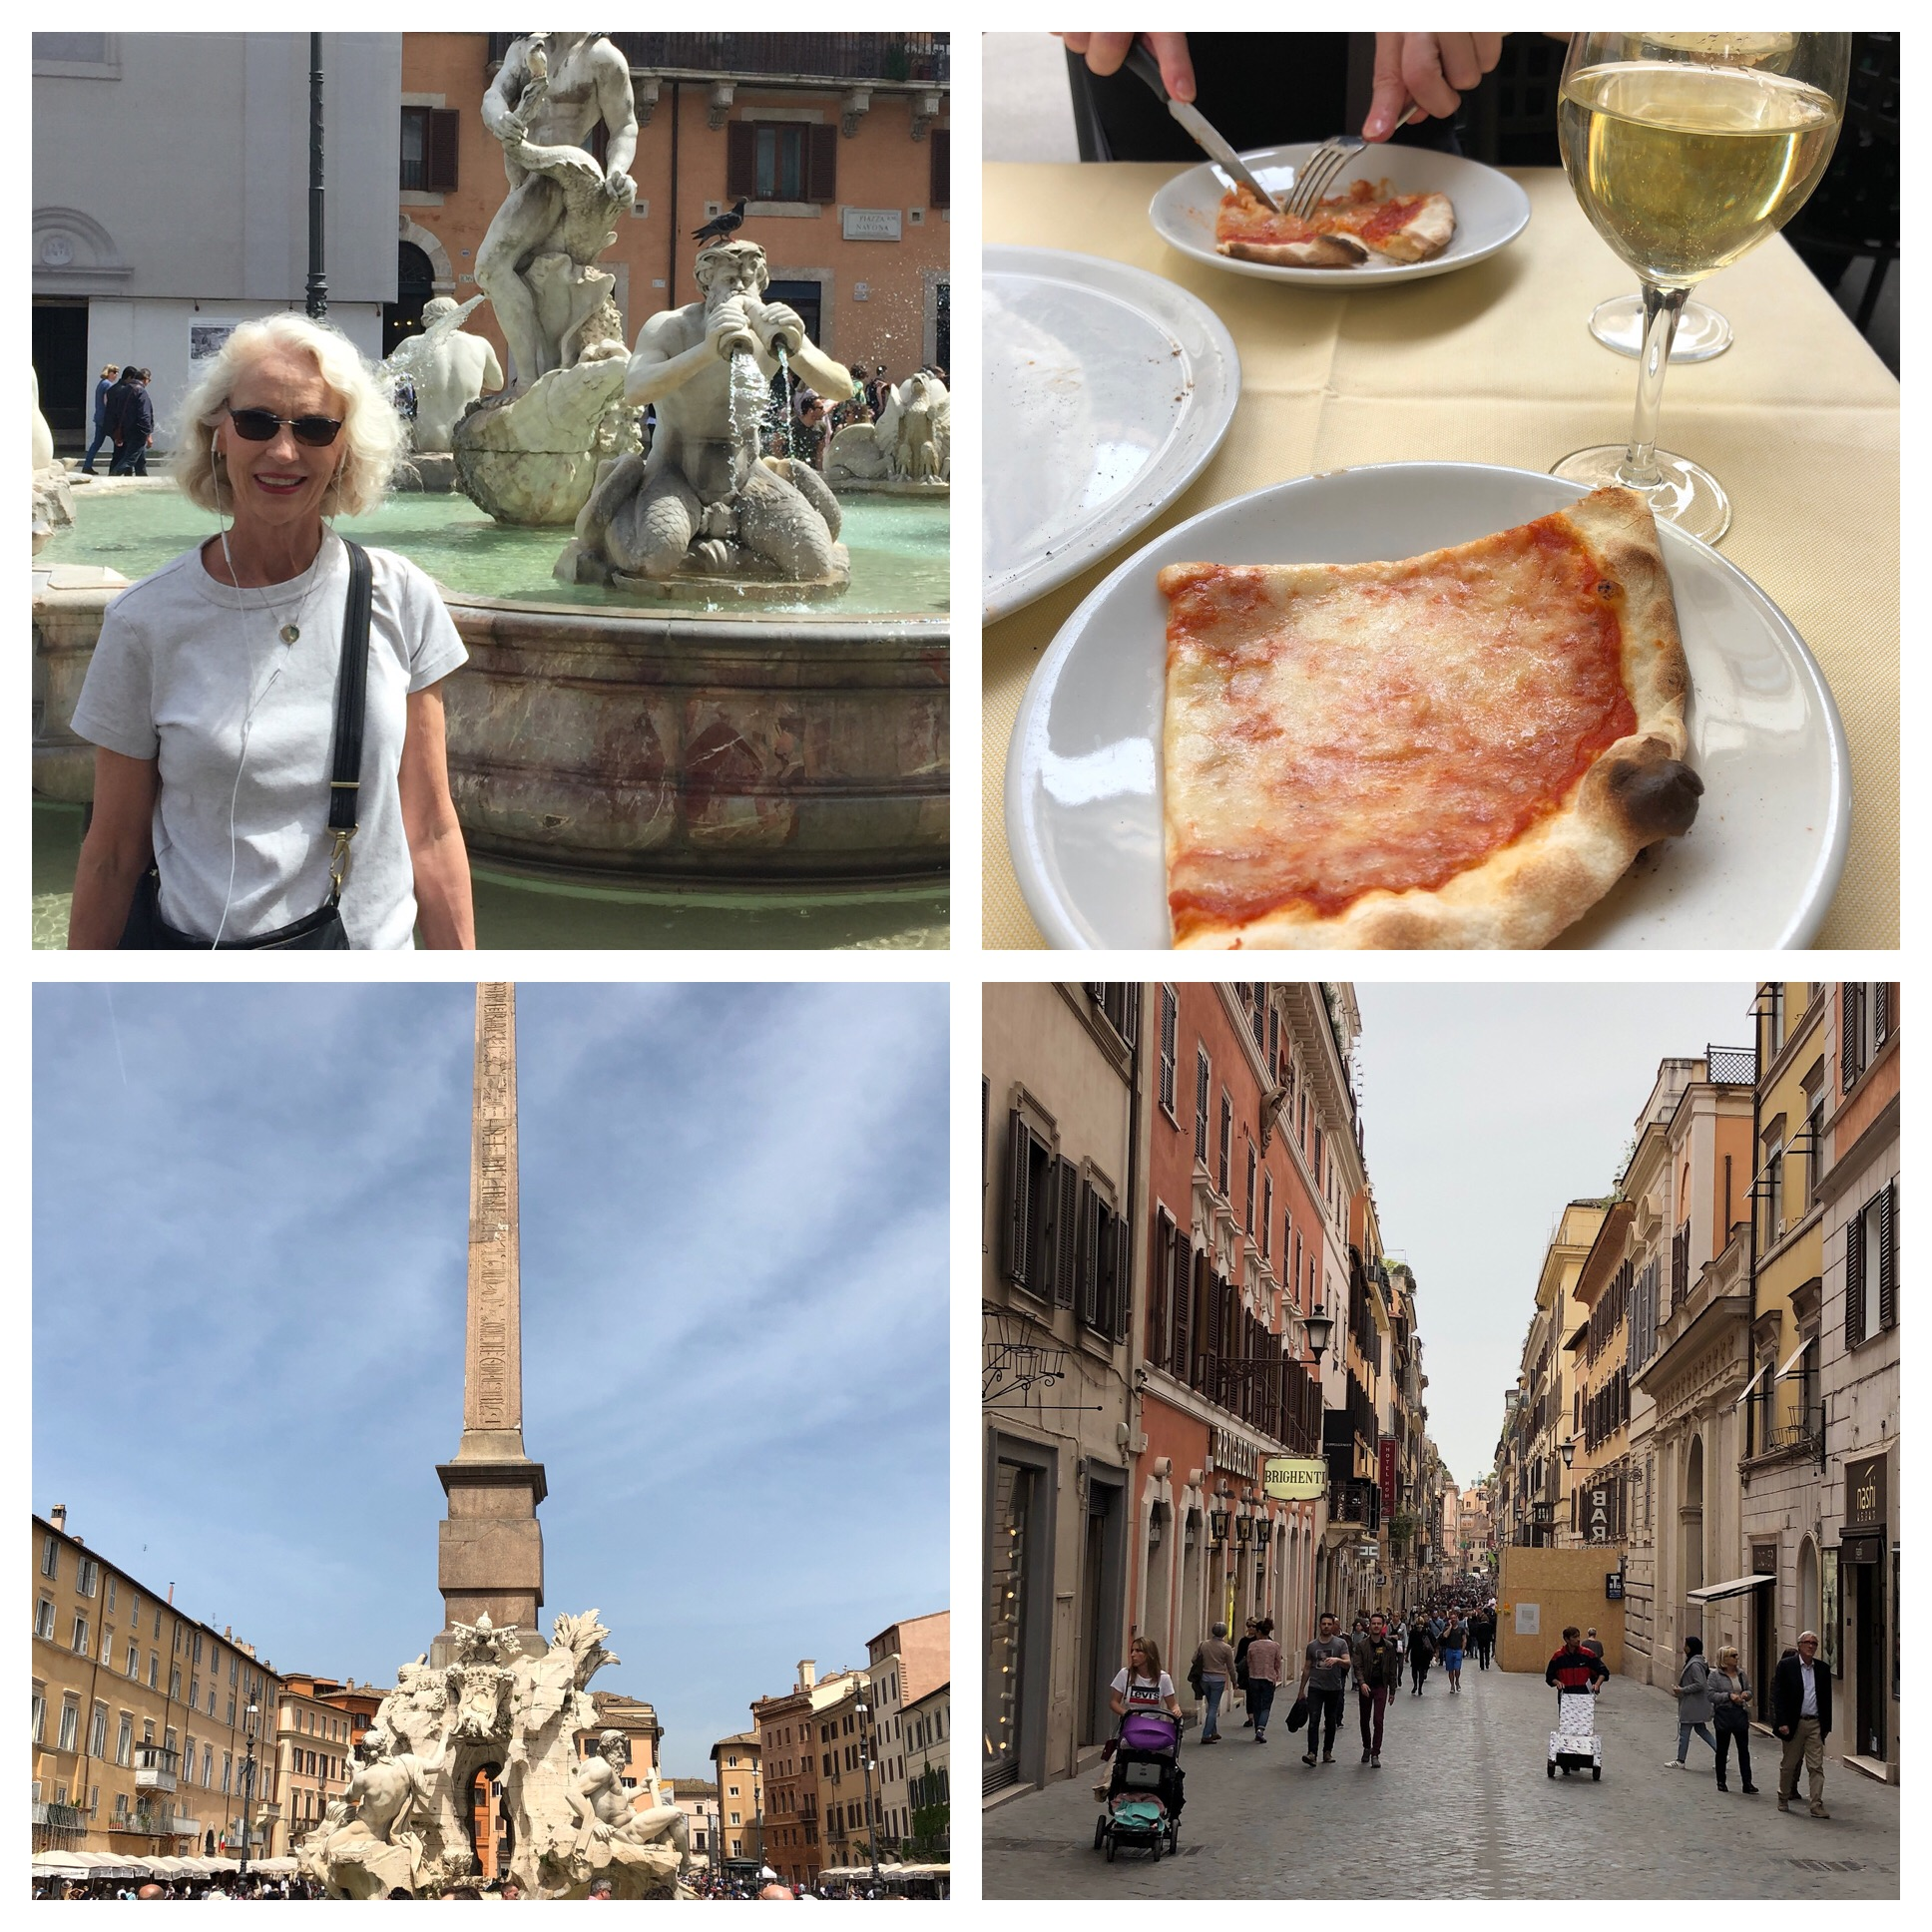 Me at one of the beautiful fountains in the Piazza Navona, our pizza and wine lunch along the way, the Four Rivers Fountain in Piazza Navona and a random street in Rome.